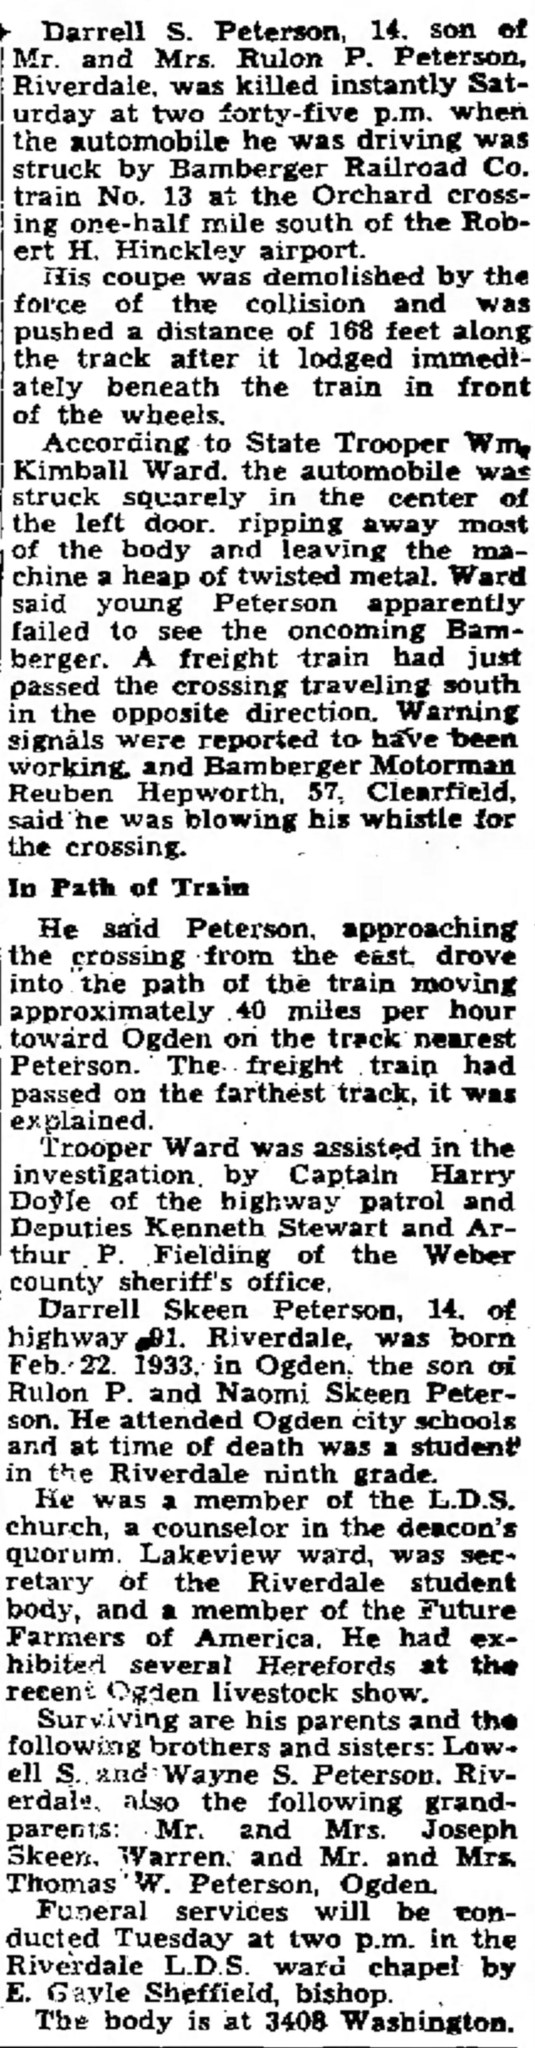 PETERSON, Darrell Skeen, accident, first article, main part, The Ogden Standard Examiner Sun Nov 23 1947